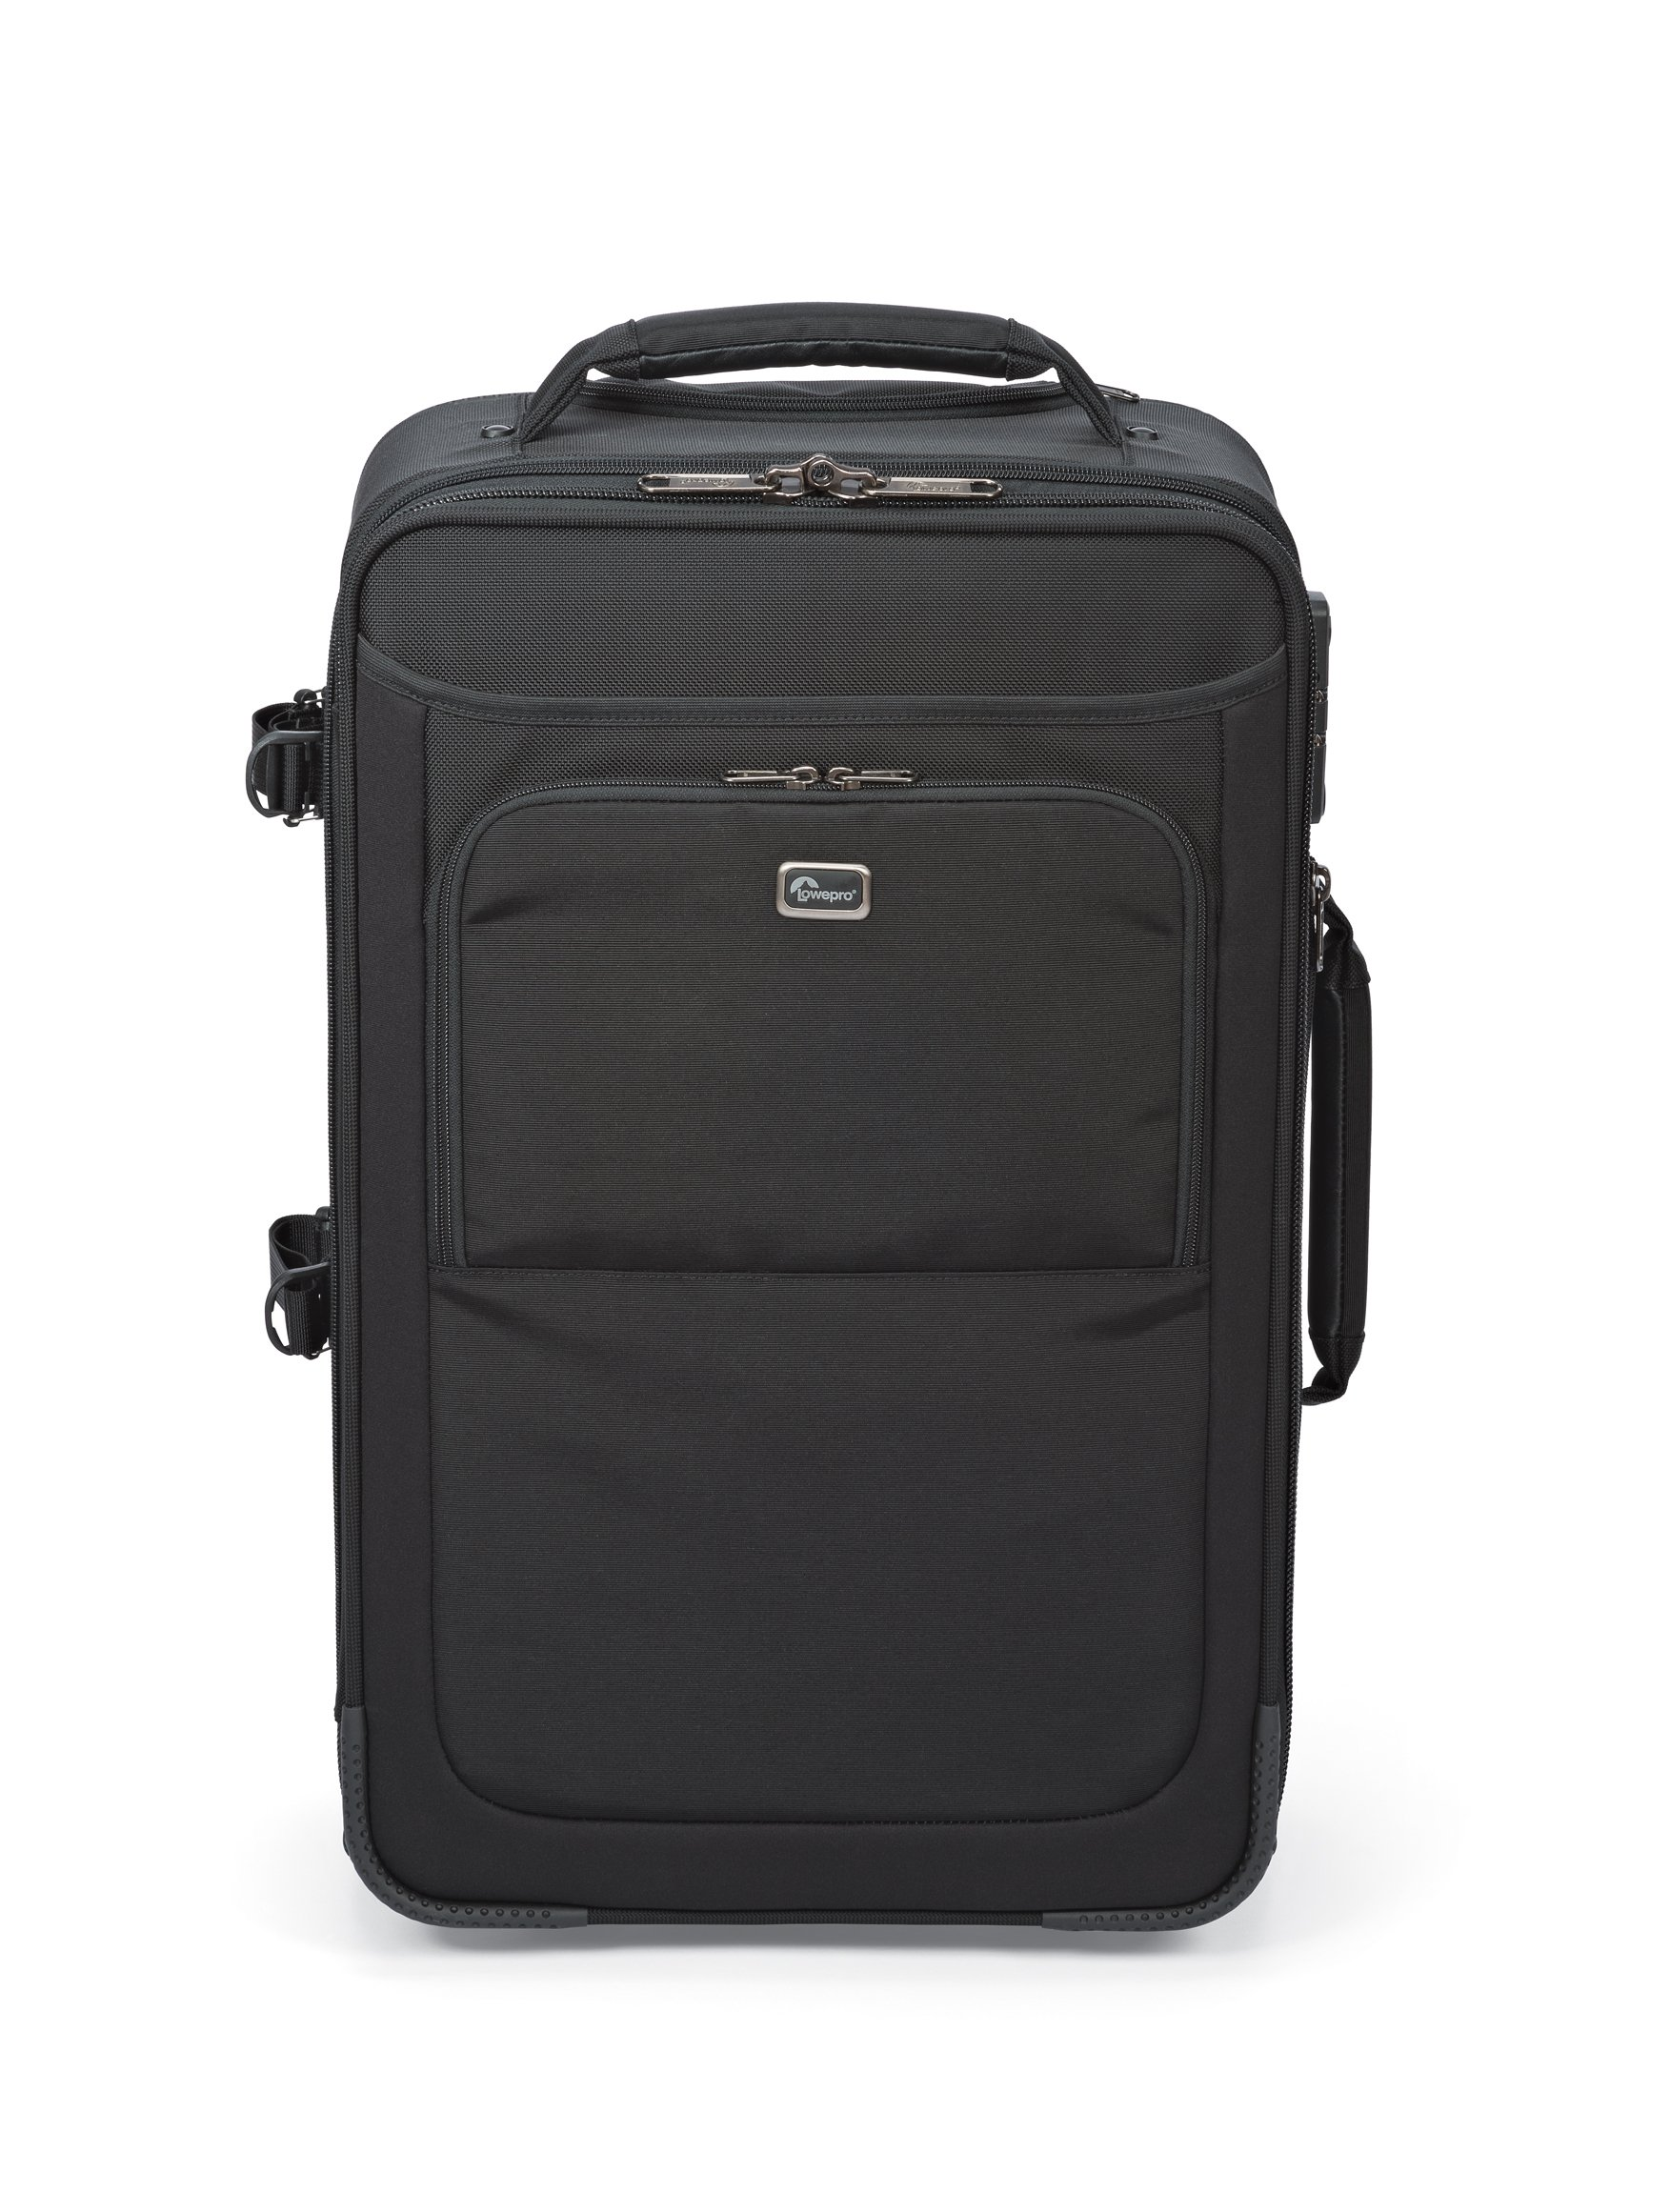 Lowepro Pro Roller x200 AW Digital SLR Camera Bag/Backpack Case with Wheels (Black) by Lowepro